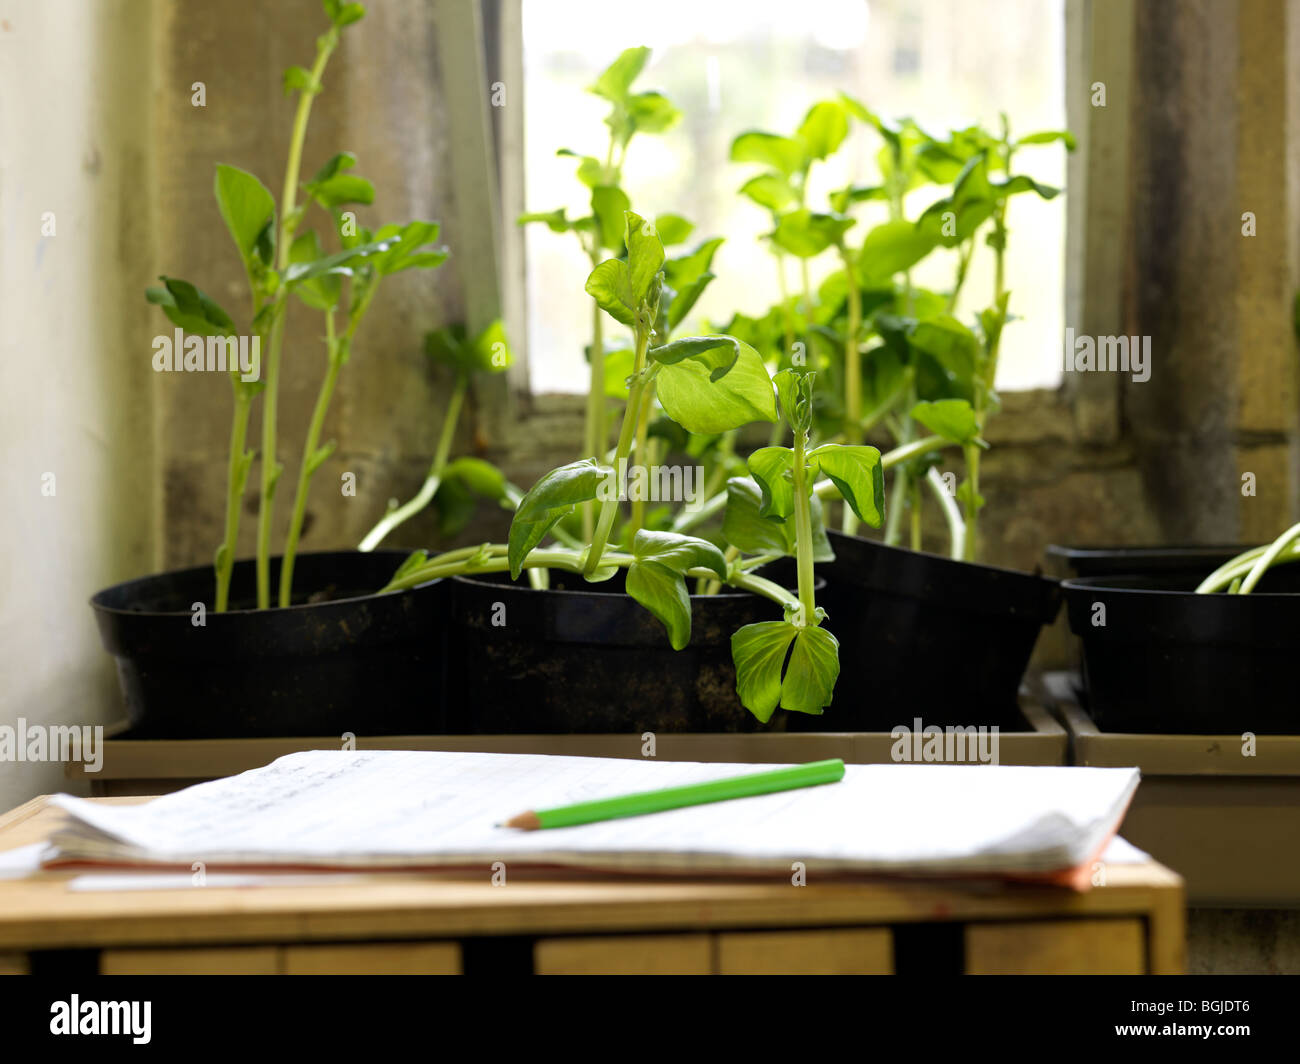 plants growing in classroom window - Stock Image